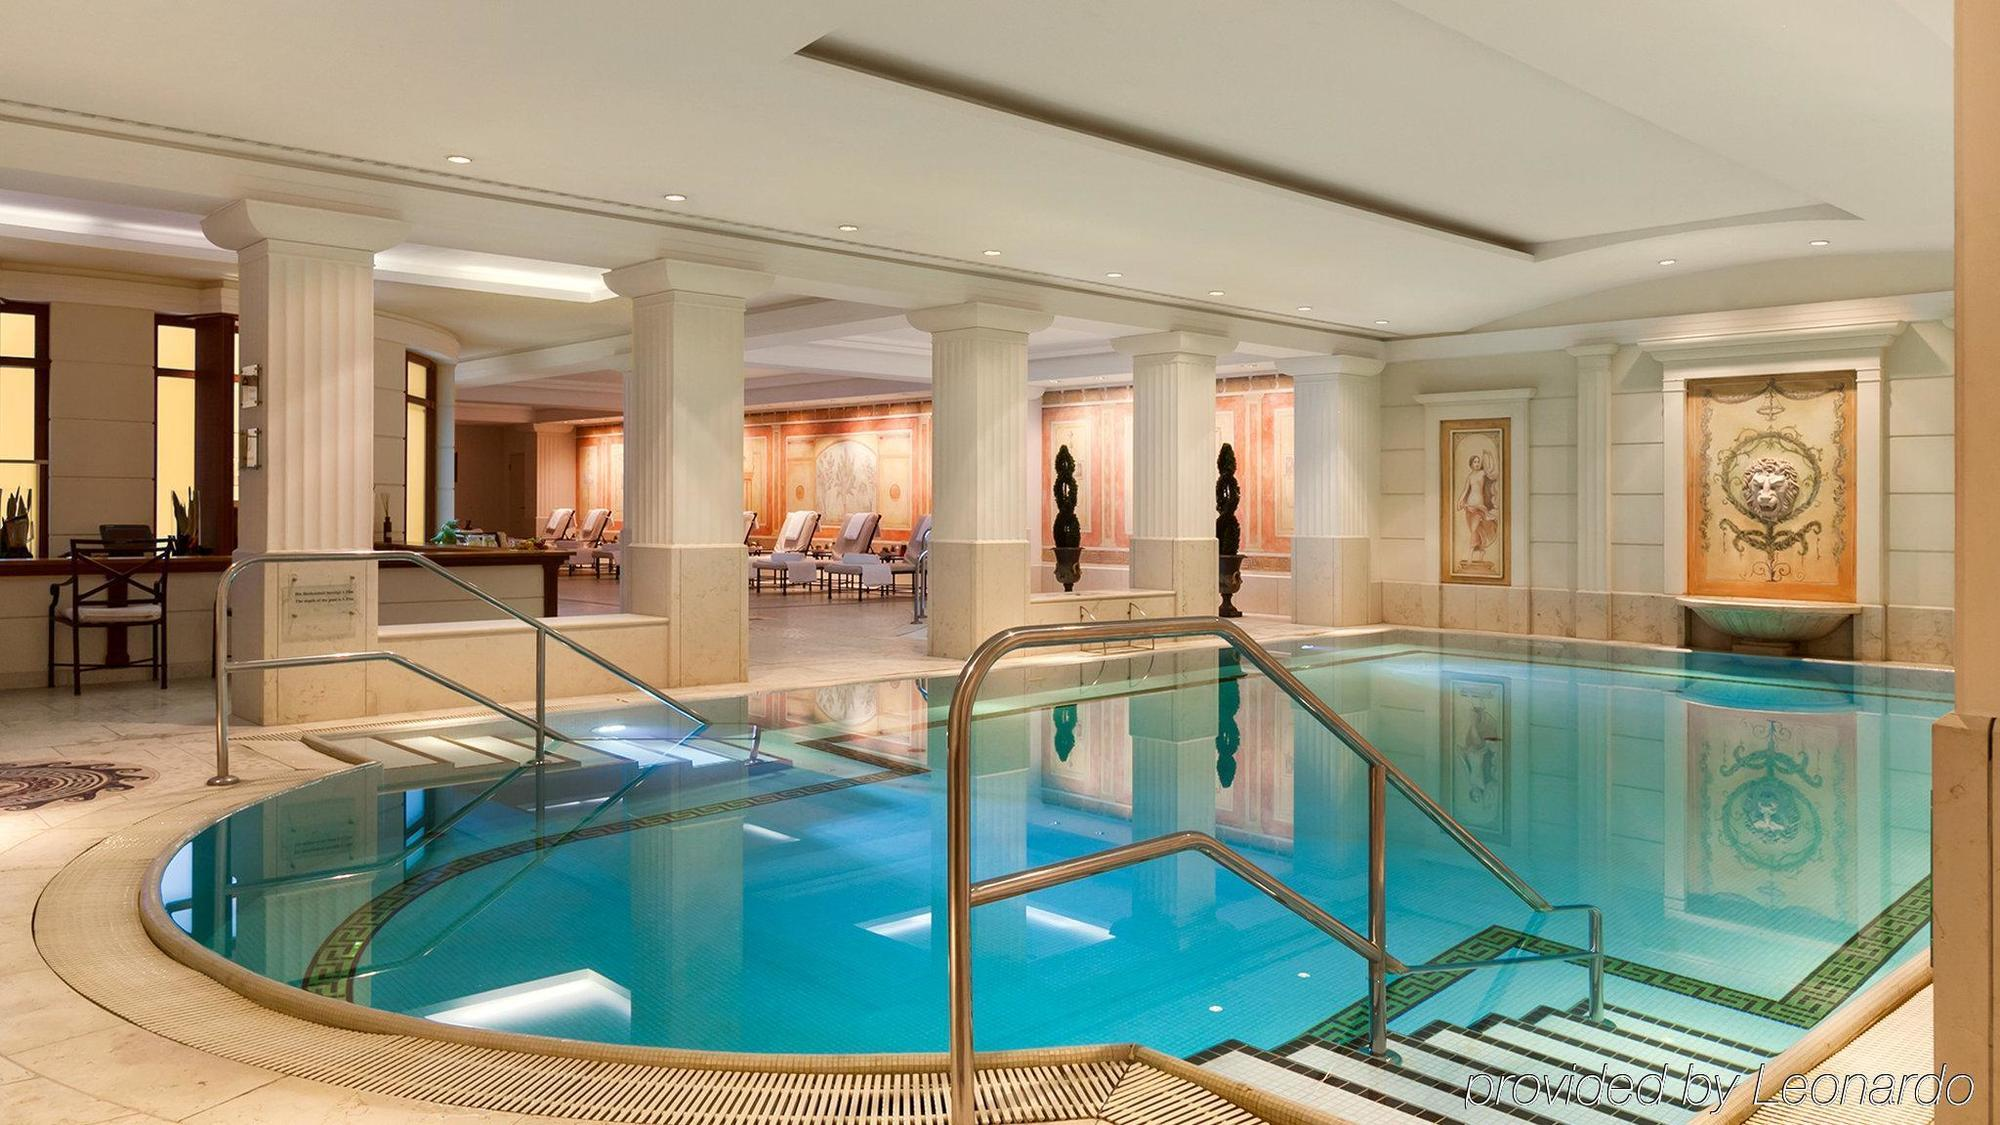 London  Star Hotels With Swimming Pools